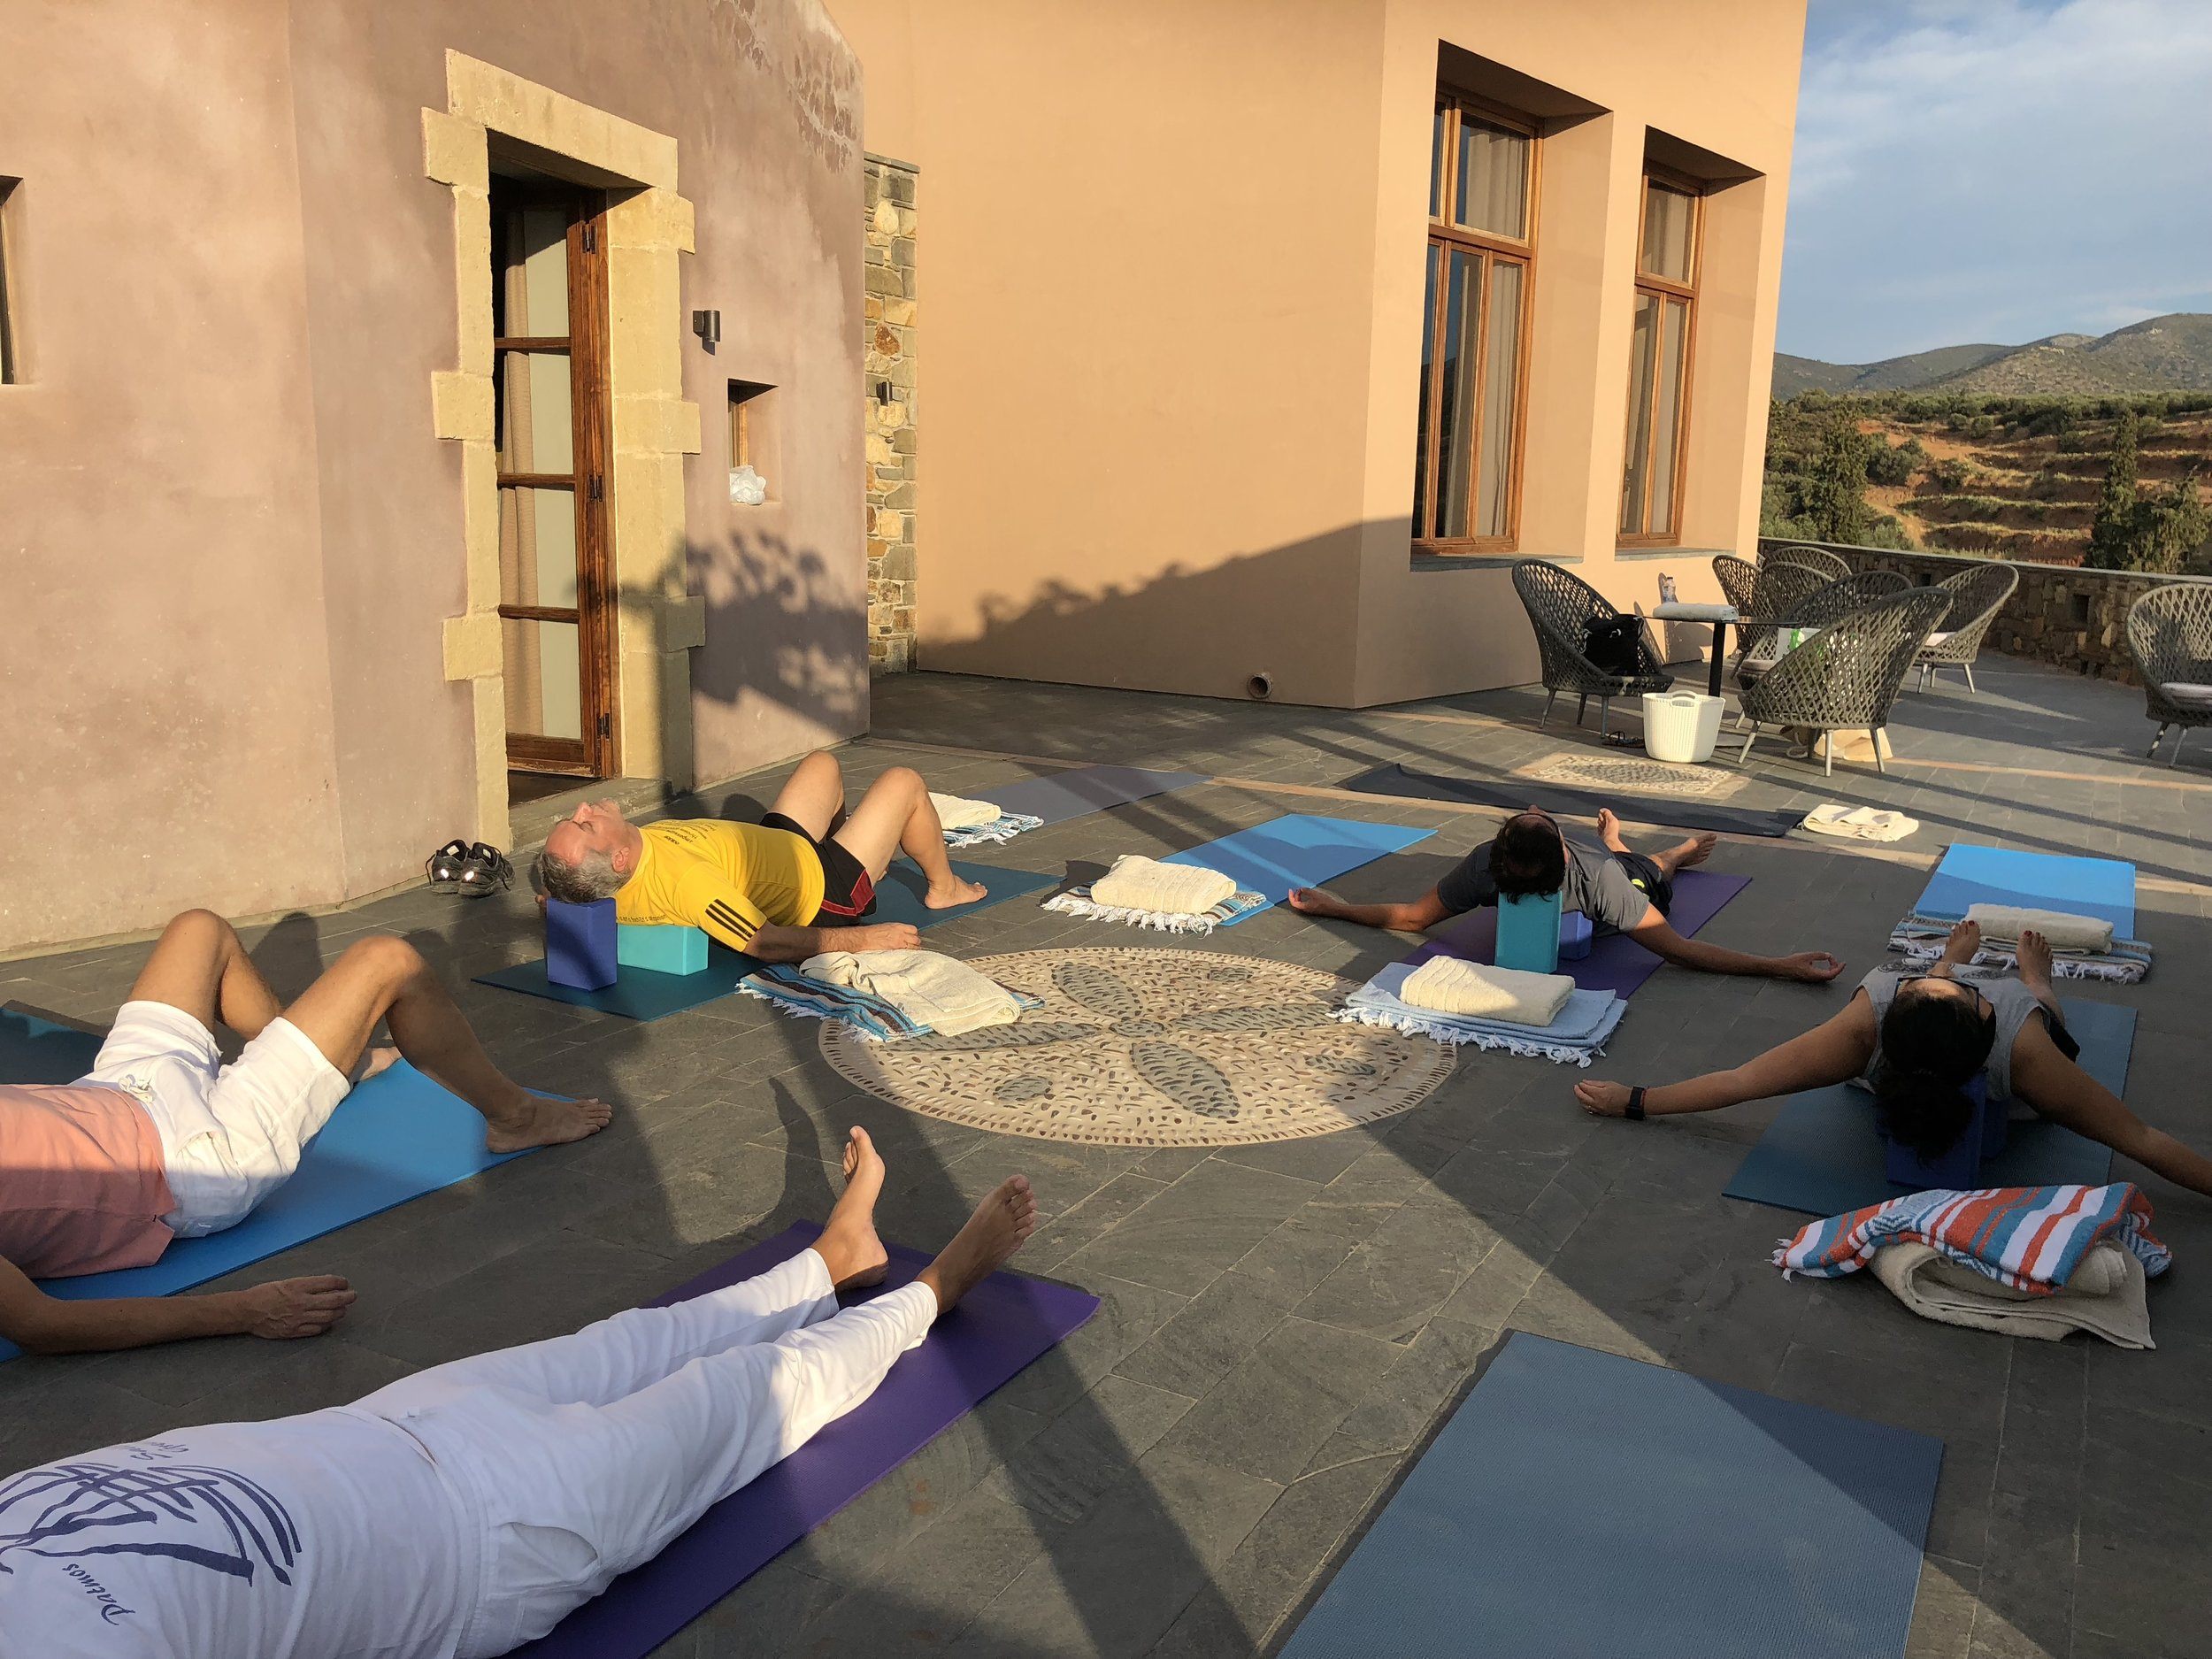 Restorative Yoga on the veranda at Kinsterna Hotel